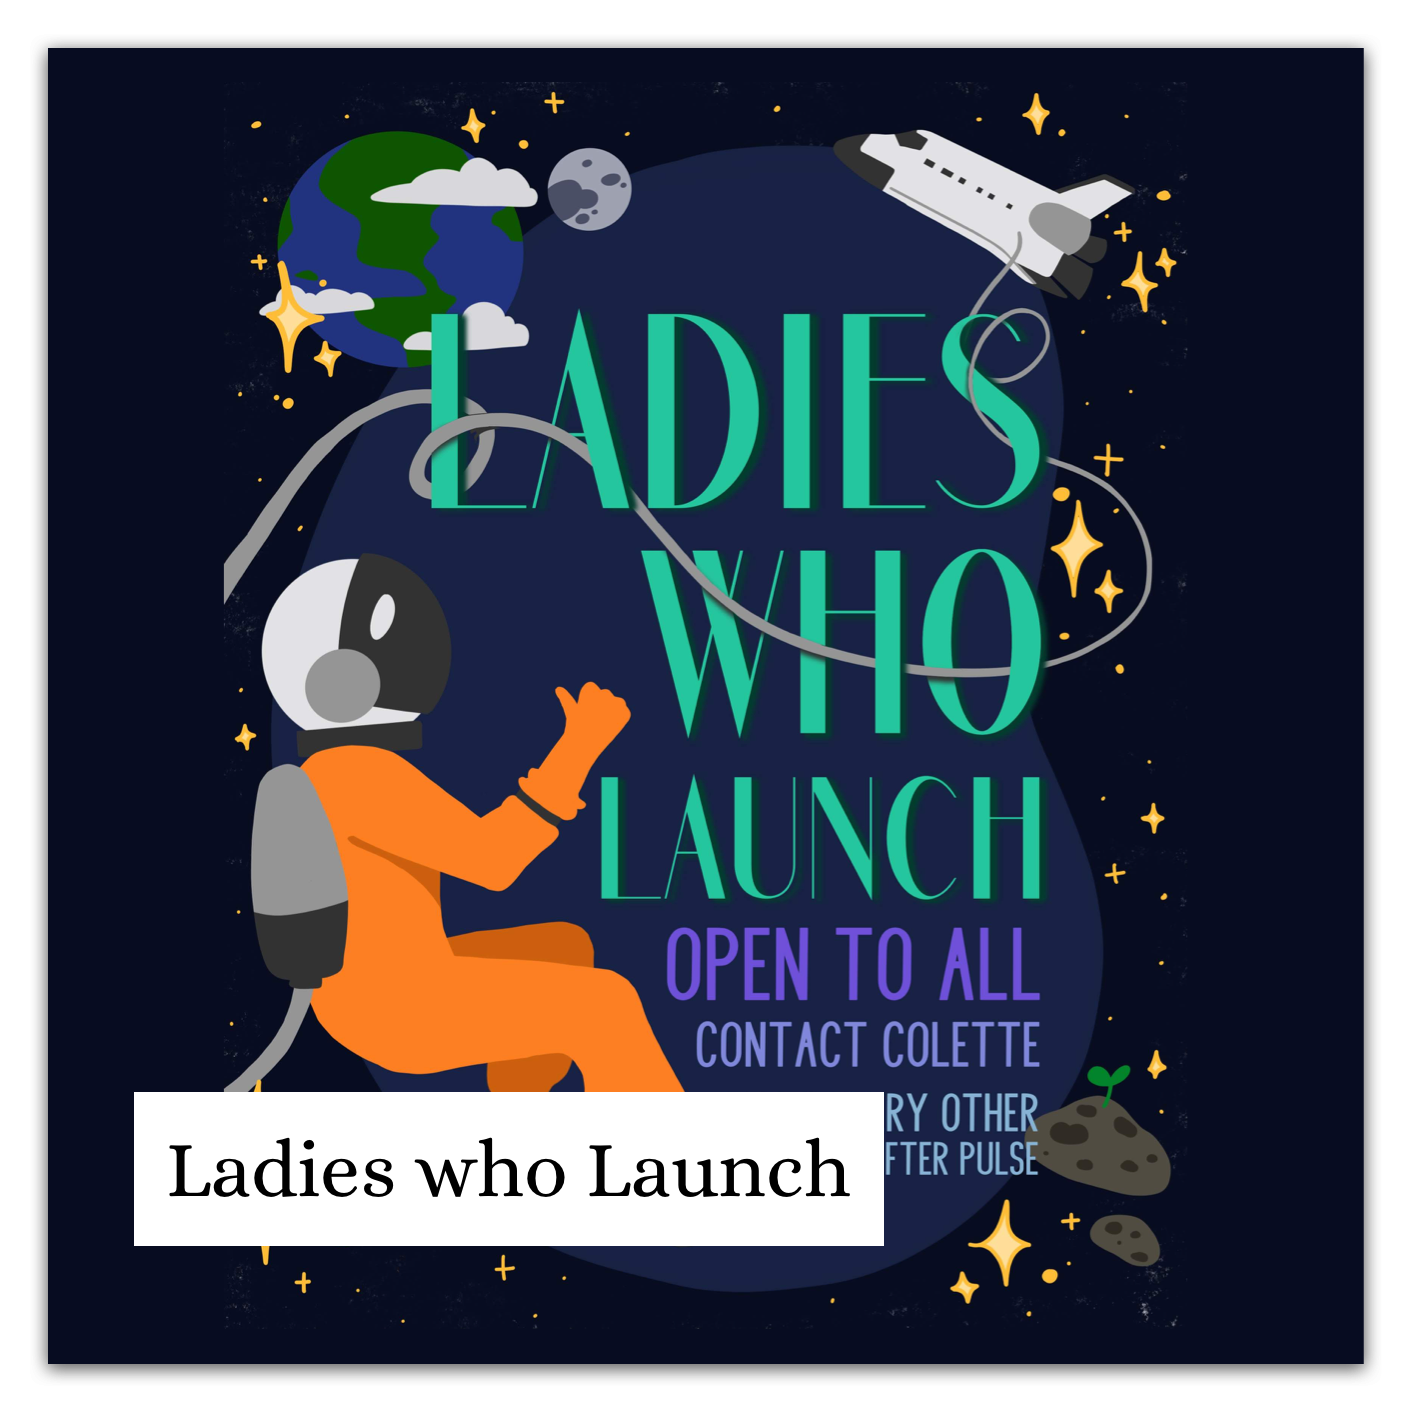 LadieswhoLaunch.png